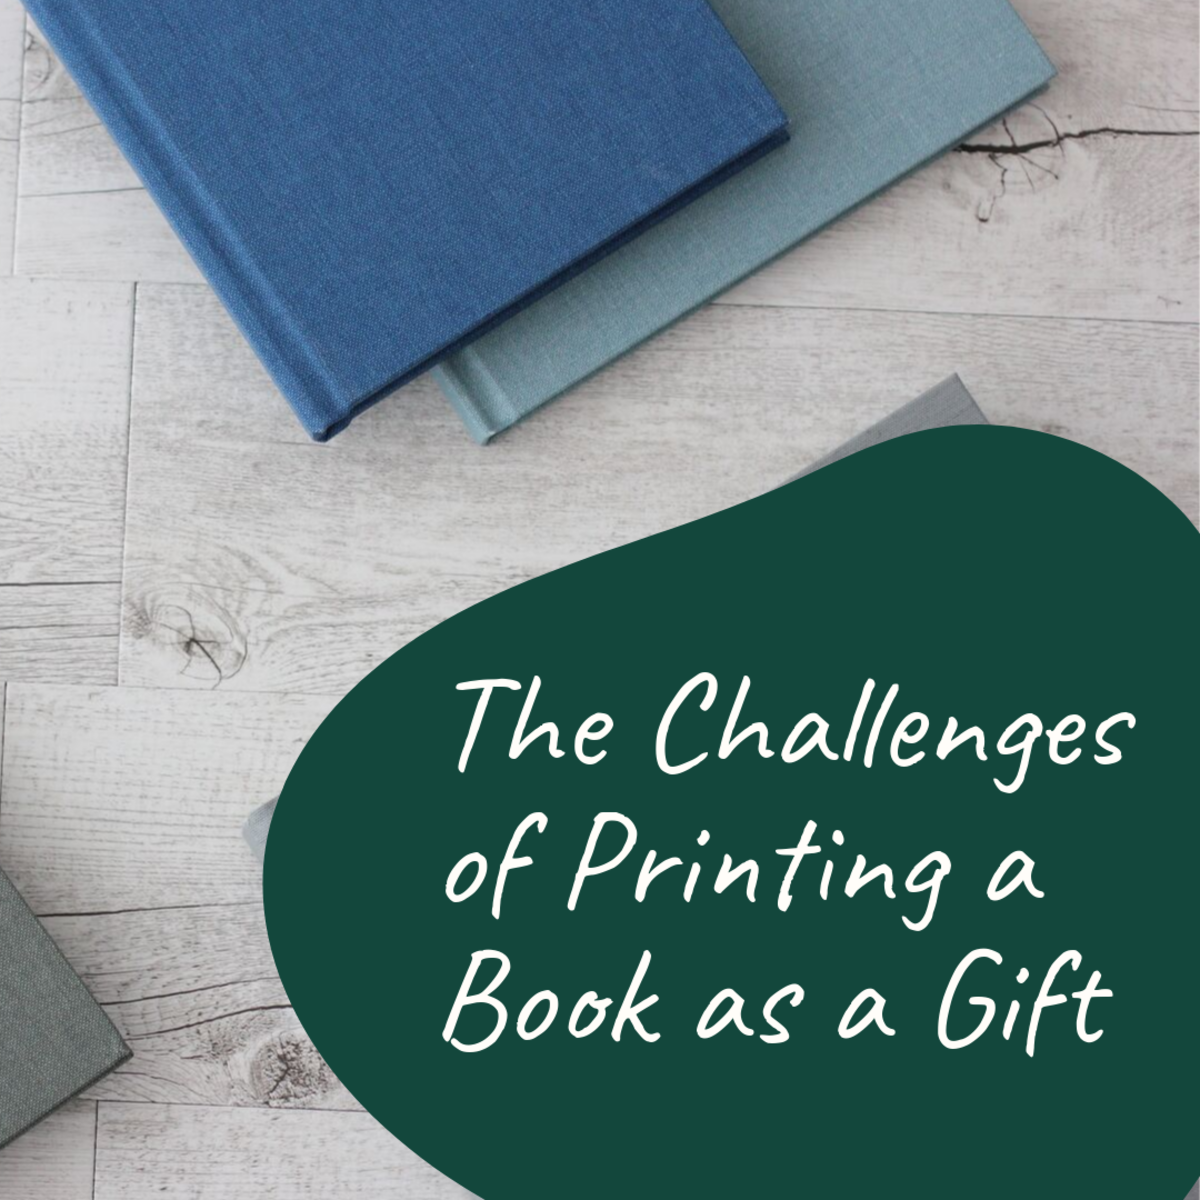 Printing a Book as a Gift: The Challenges